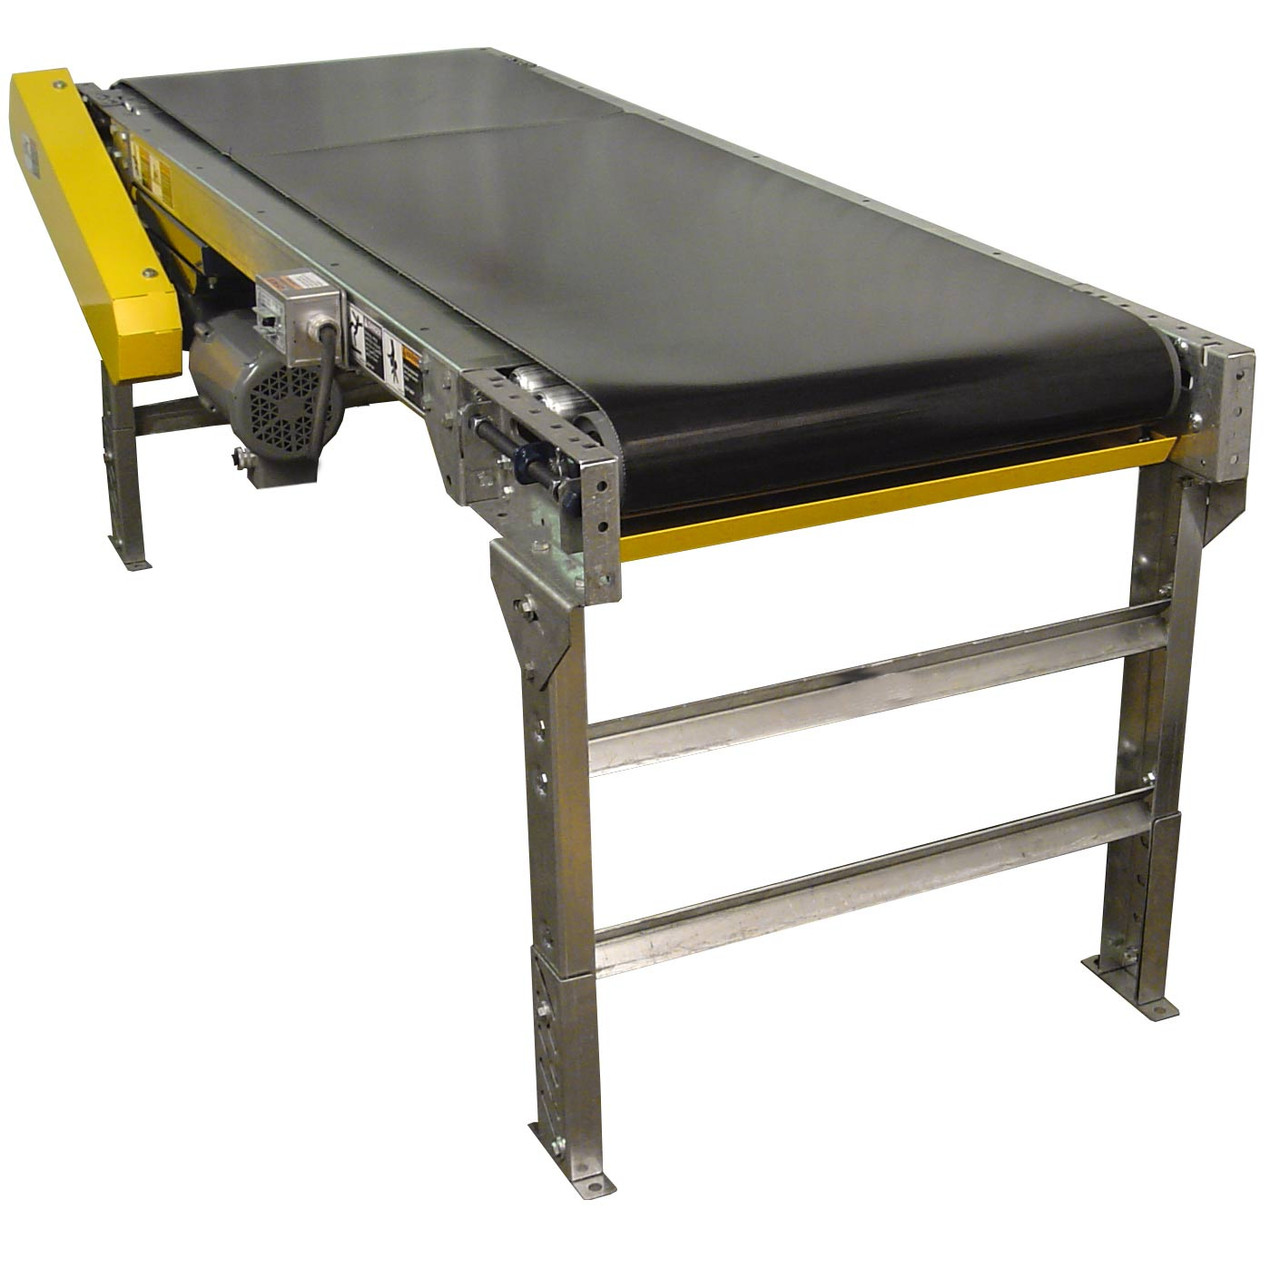 Powered belt conveyor design also makes it useful for transporting loads on inclines and declines.